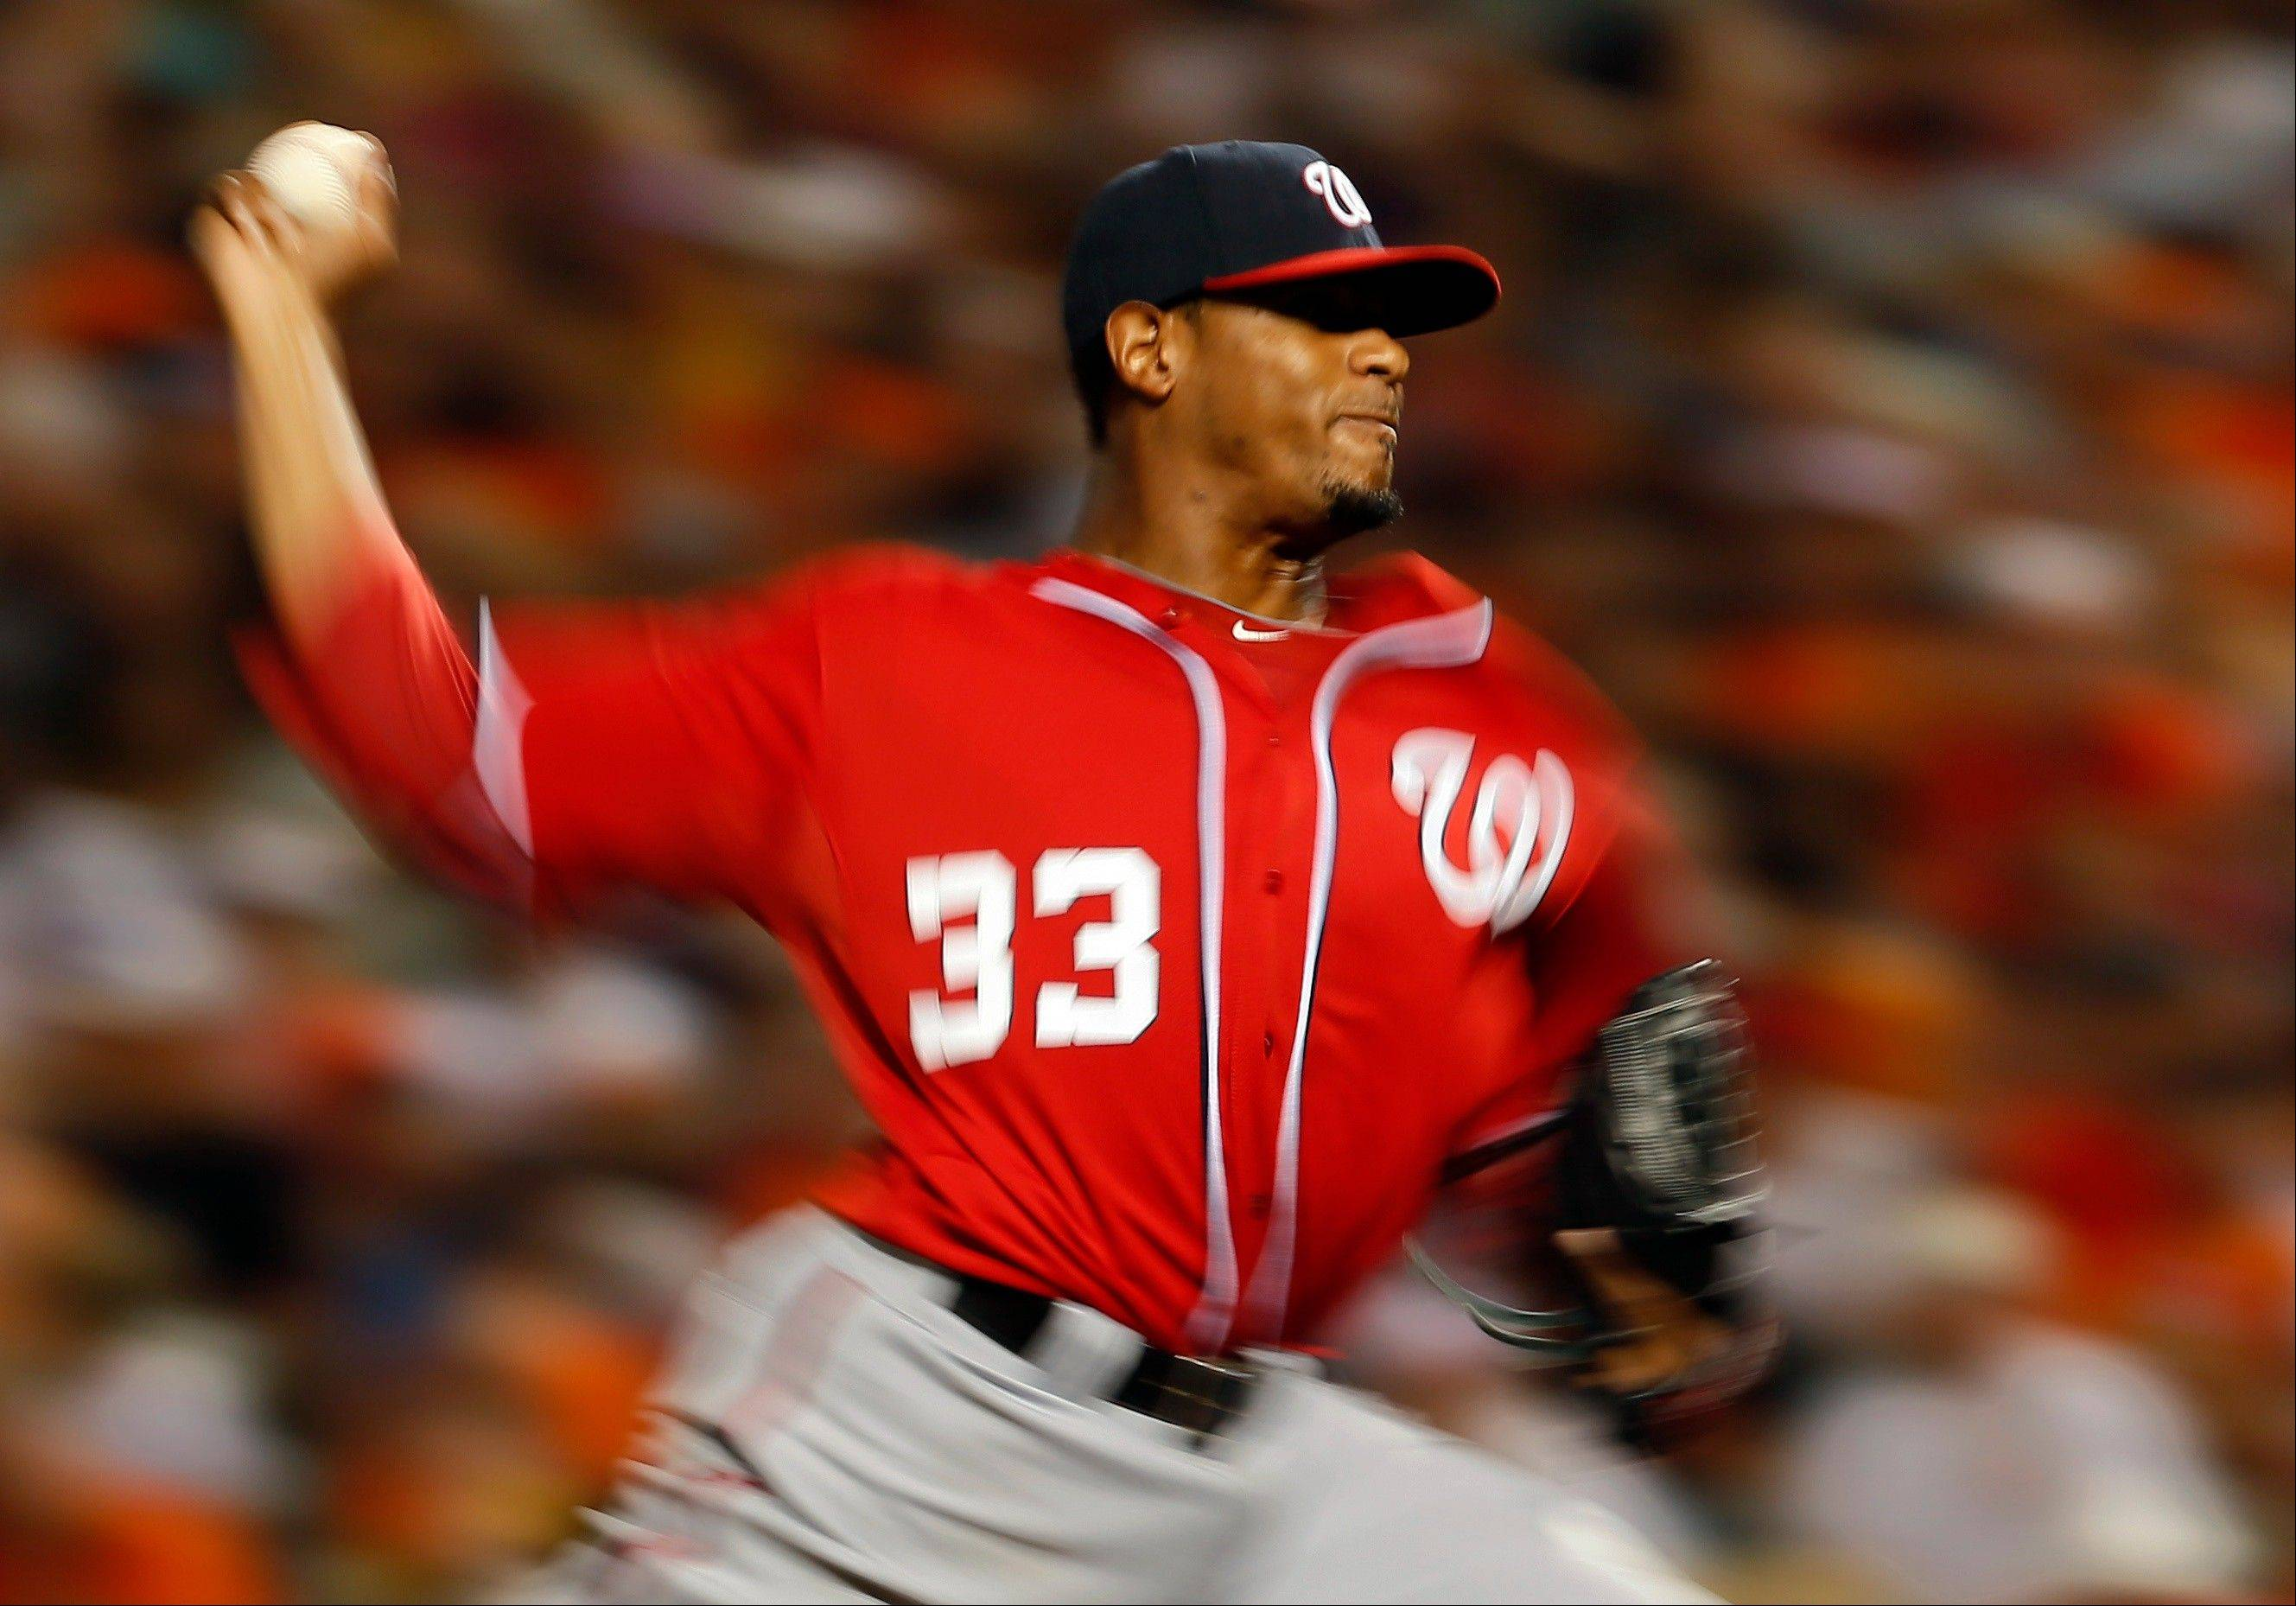 The Cubs' signing of Edwin Jackson to a four-year, $52-million deal shows the team wants to be competitive this year, according to beat writer Bruce Miles.